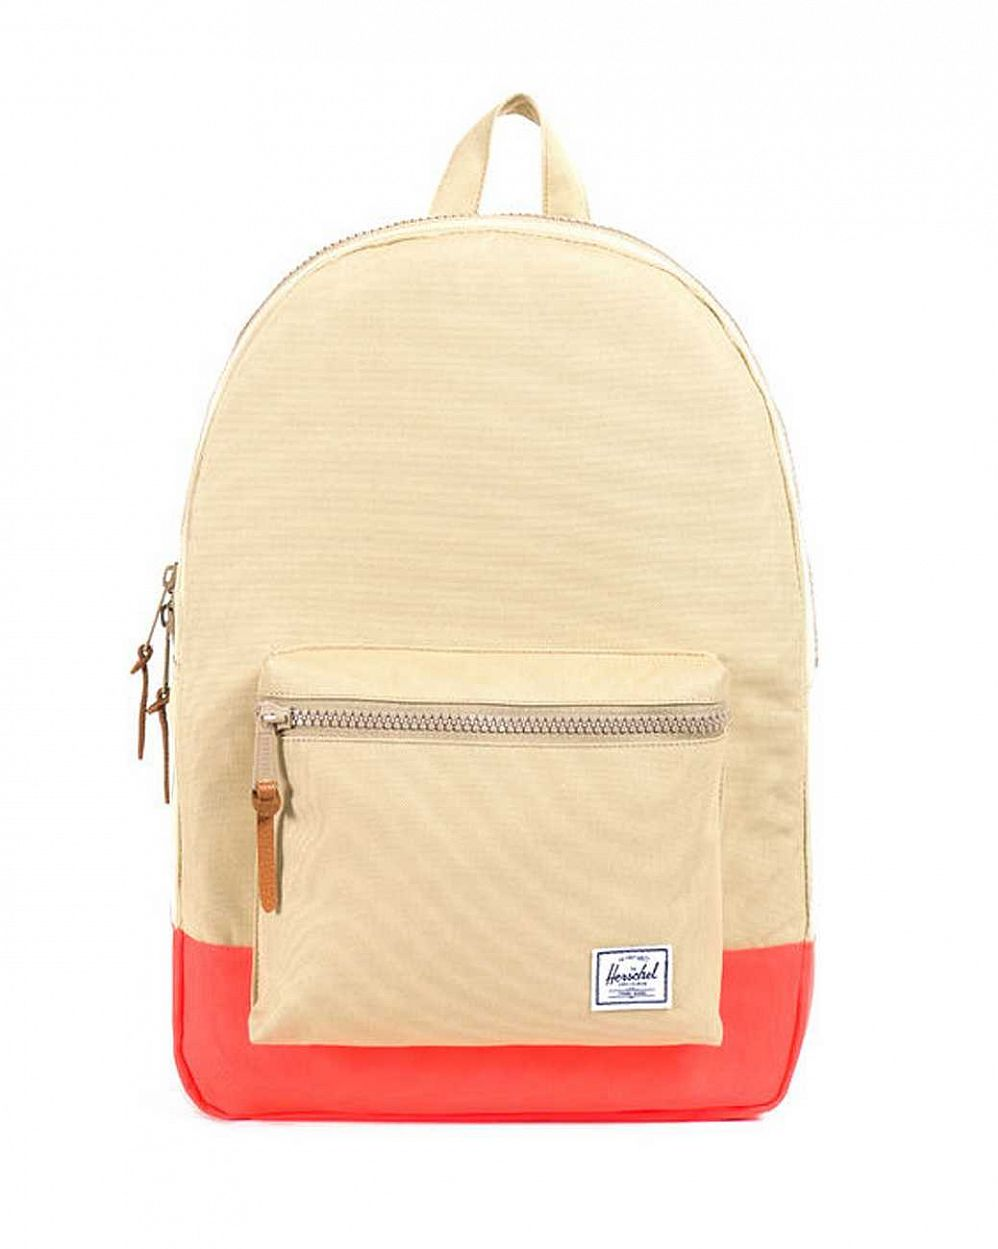 купить Рюкзак Herschel Settlement Khaki Neon Orange Rubber в Москве